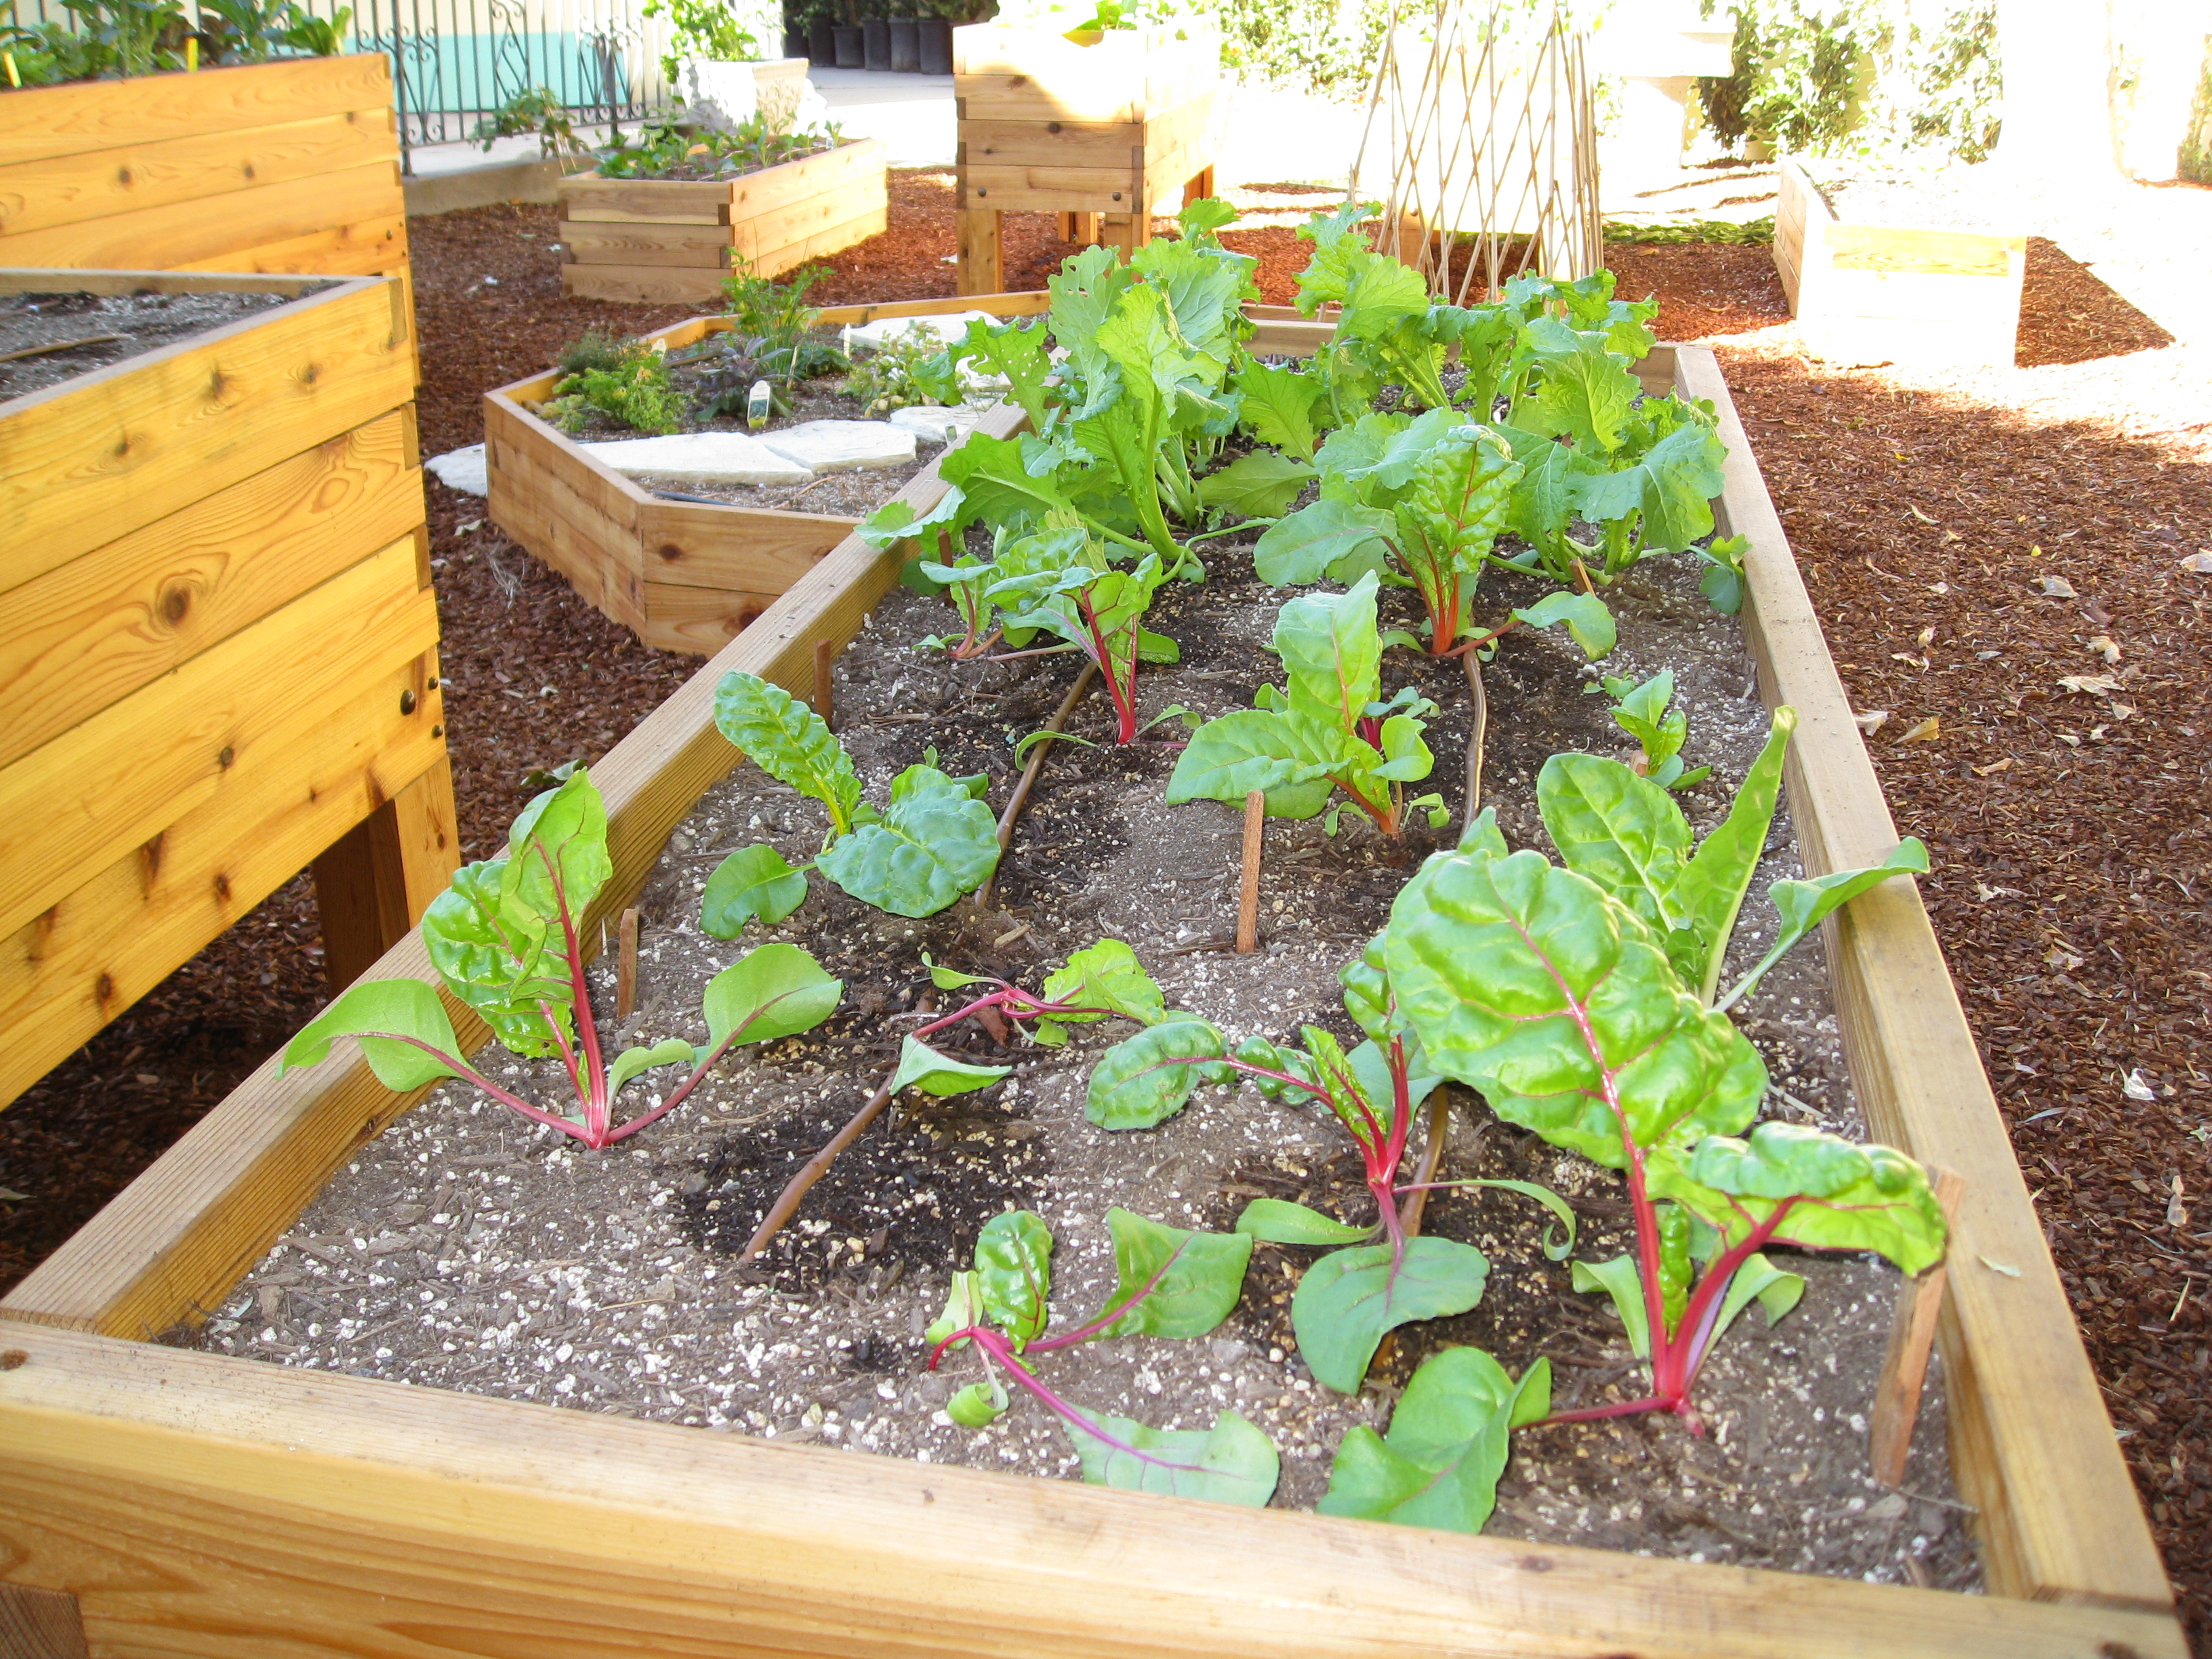 Residents started chard and mustard greens from seed in trays. Then transplanted them into their beds.